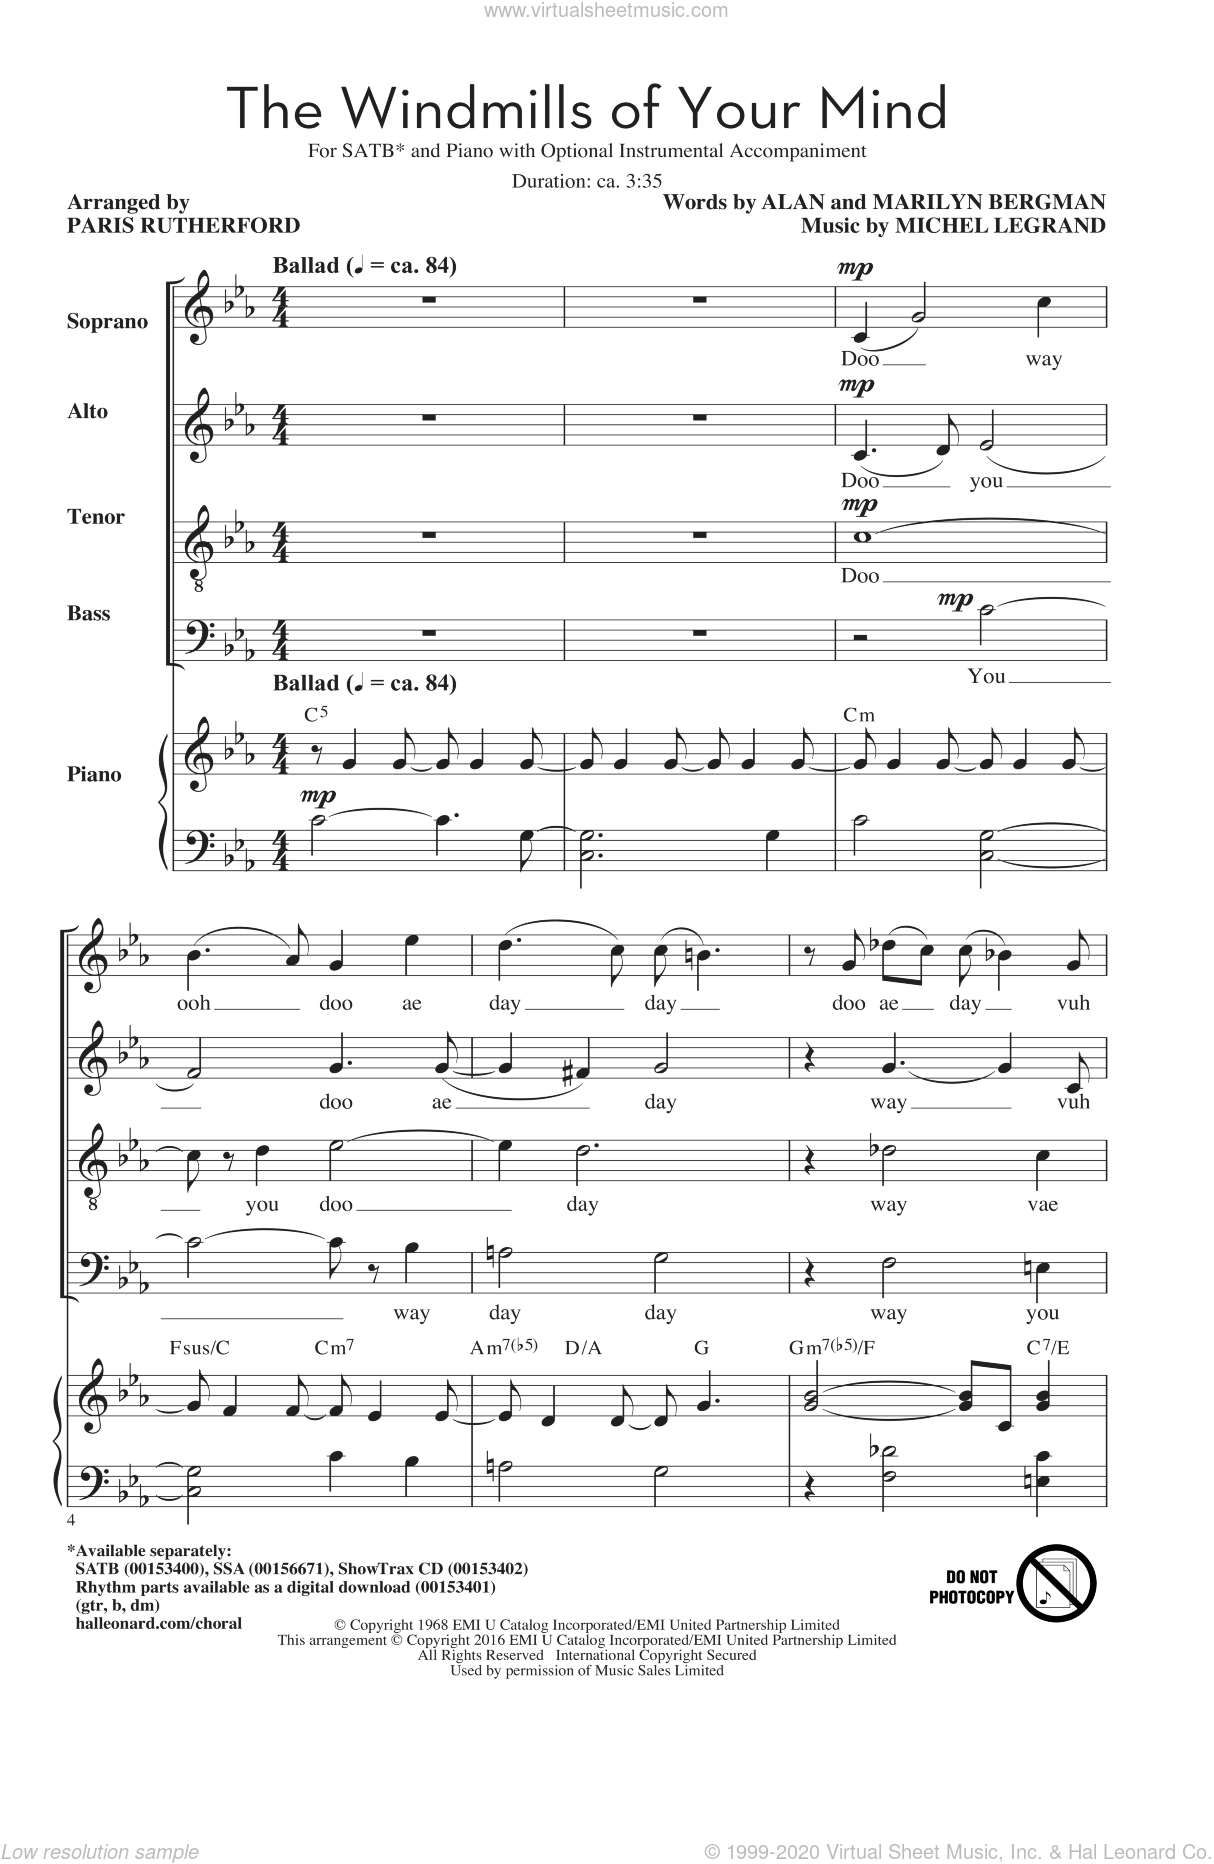 Legrand - The Windmills Of Your Mind (arr  Paris Rutherford) sheet music  for choir (SATB: soprano, alto, tenor, bass)